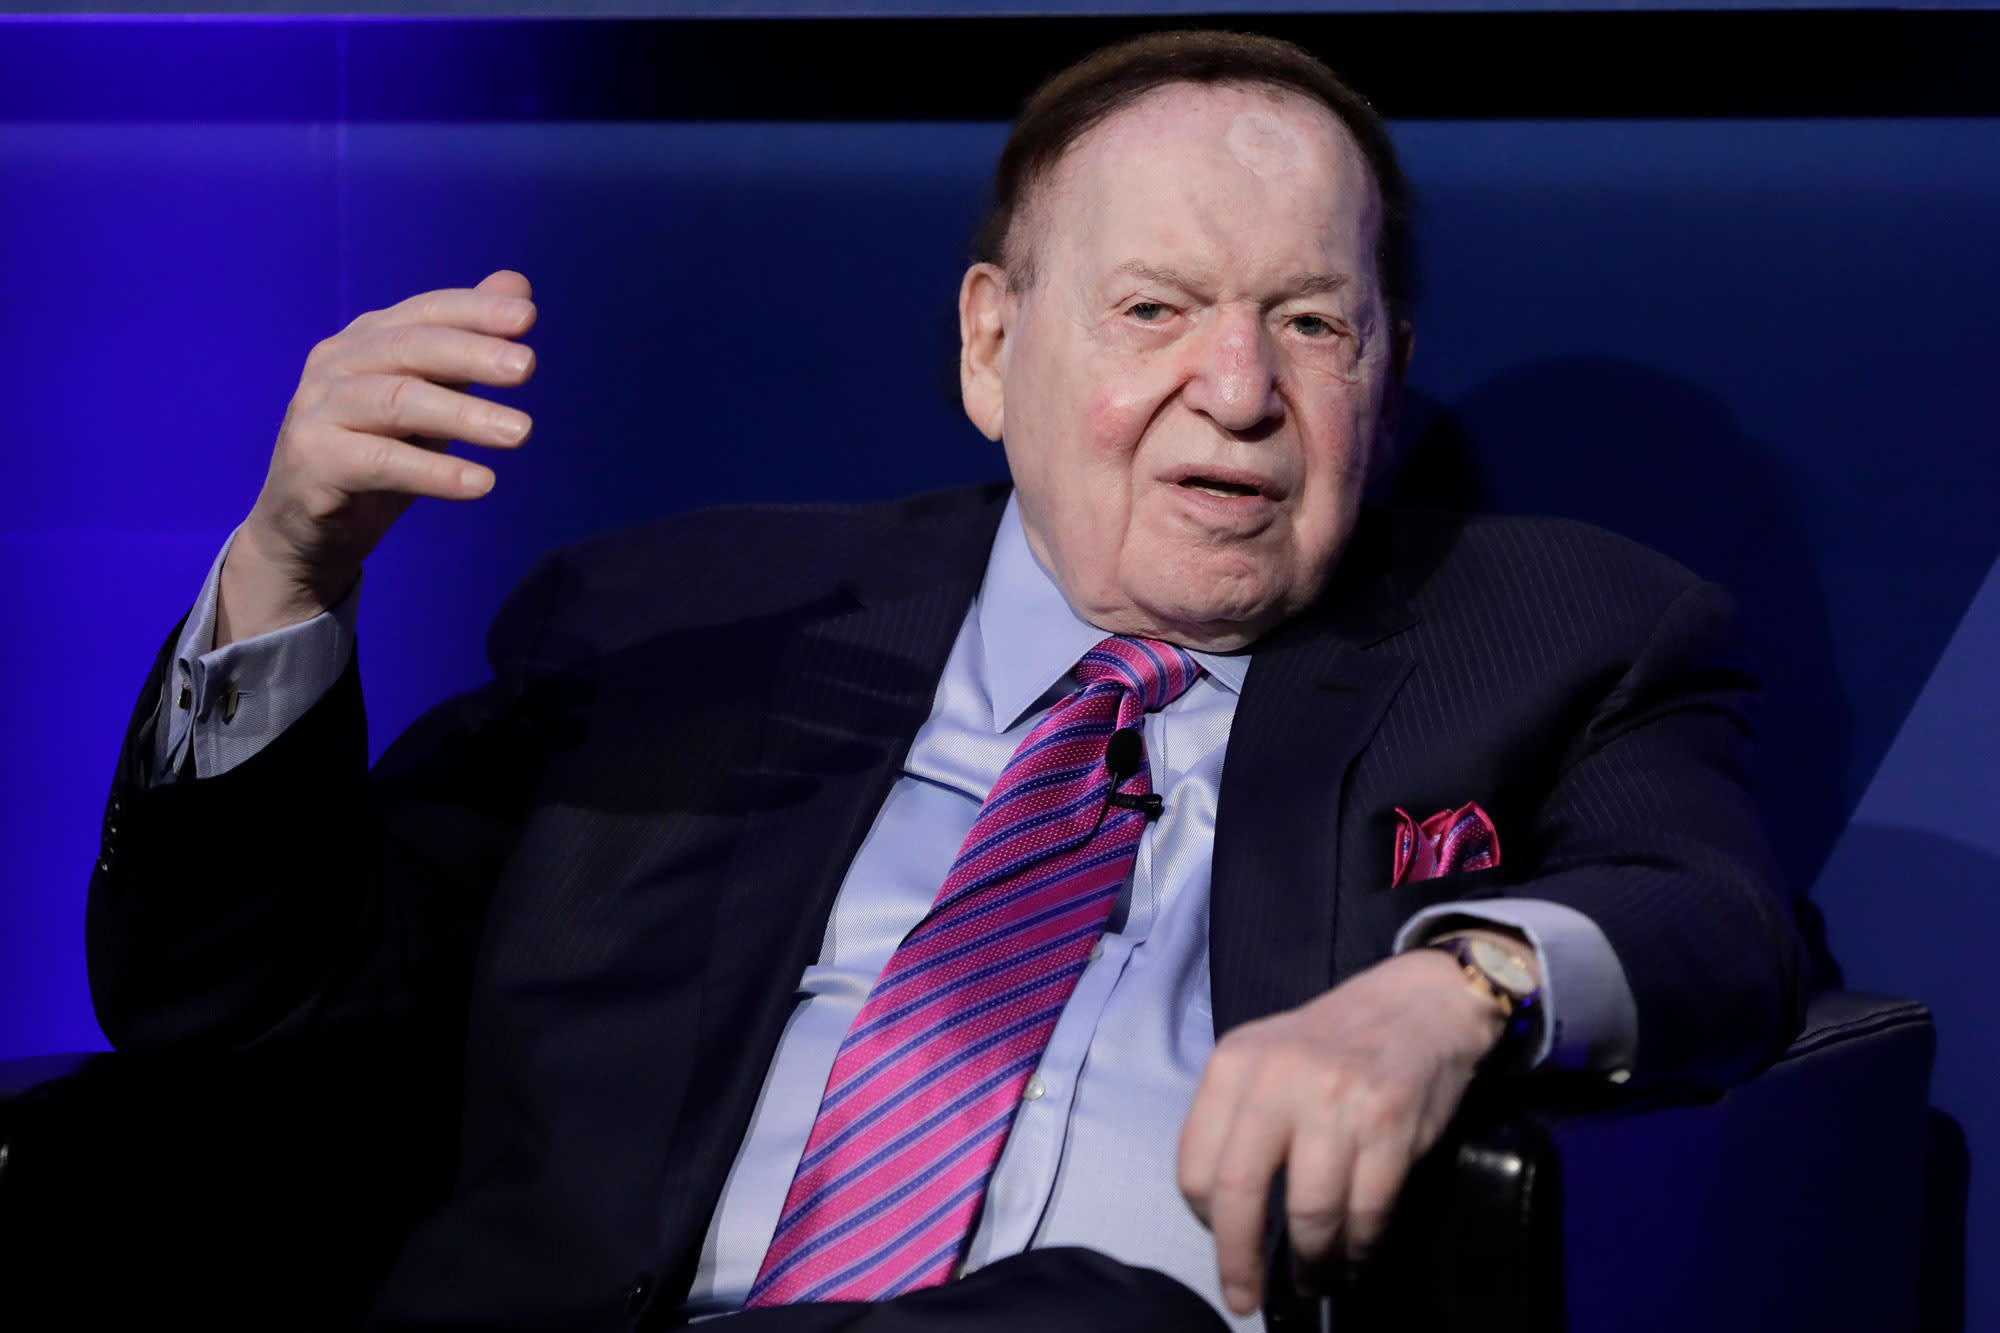 Republican megadonors Sheldon Adelson and wife give a whopping $213,000 to Senate GOP fundraising committee